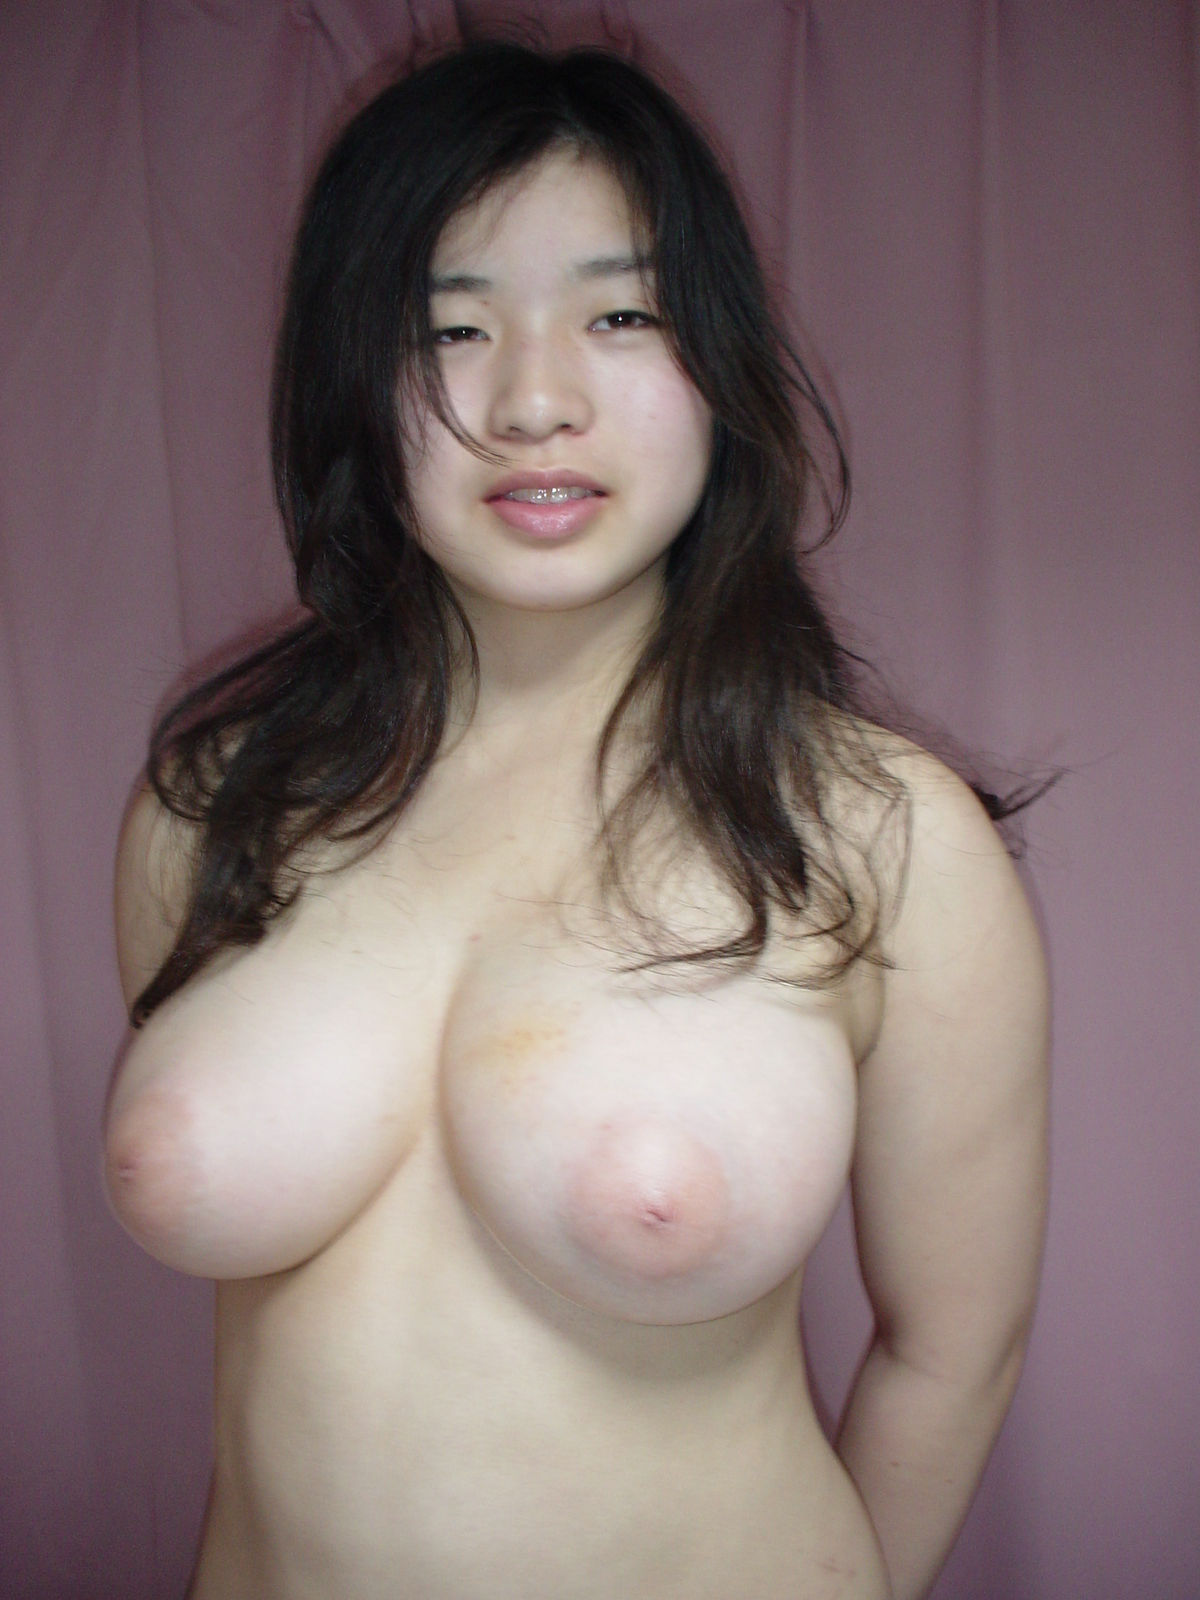 image Webcam korean cute girl